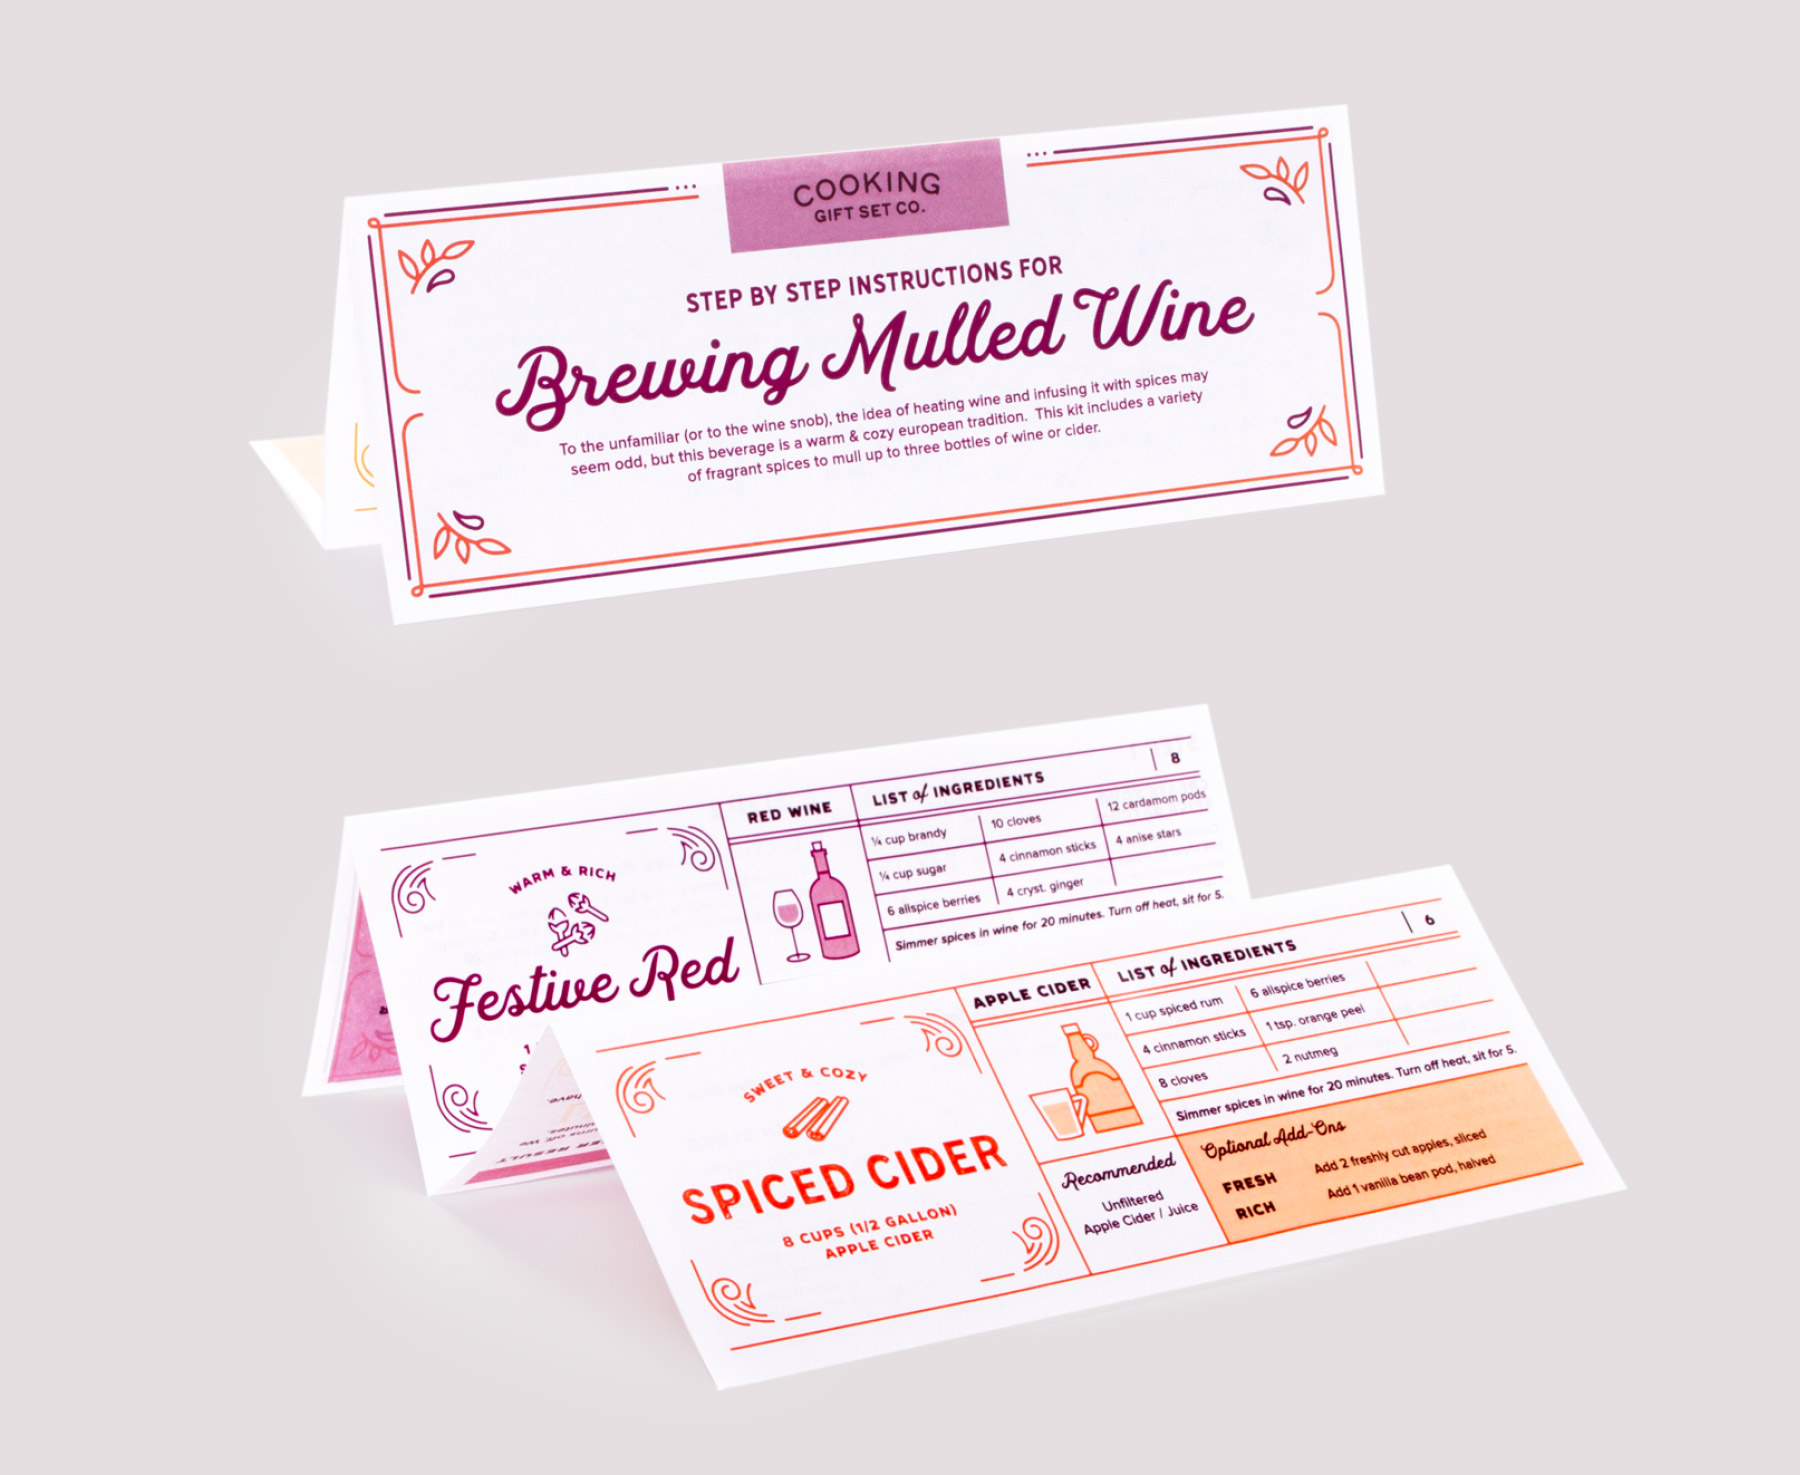 Instructions for brewing mulled wine